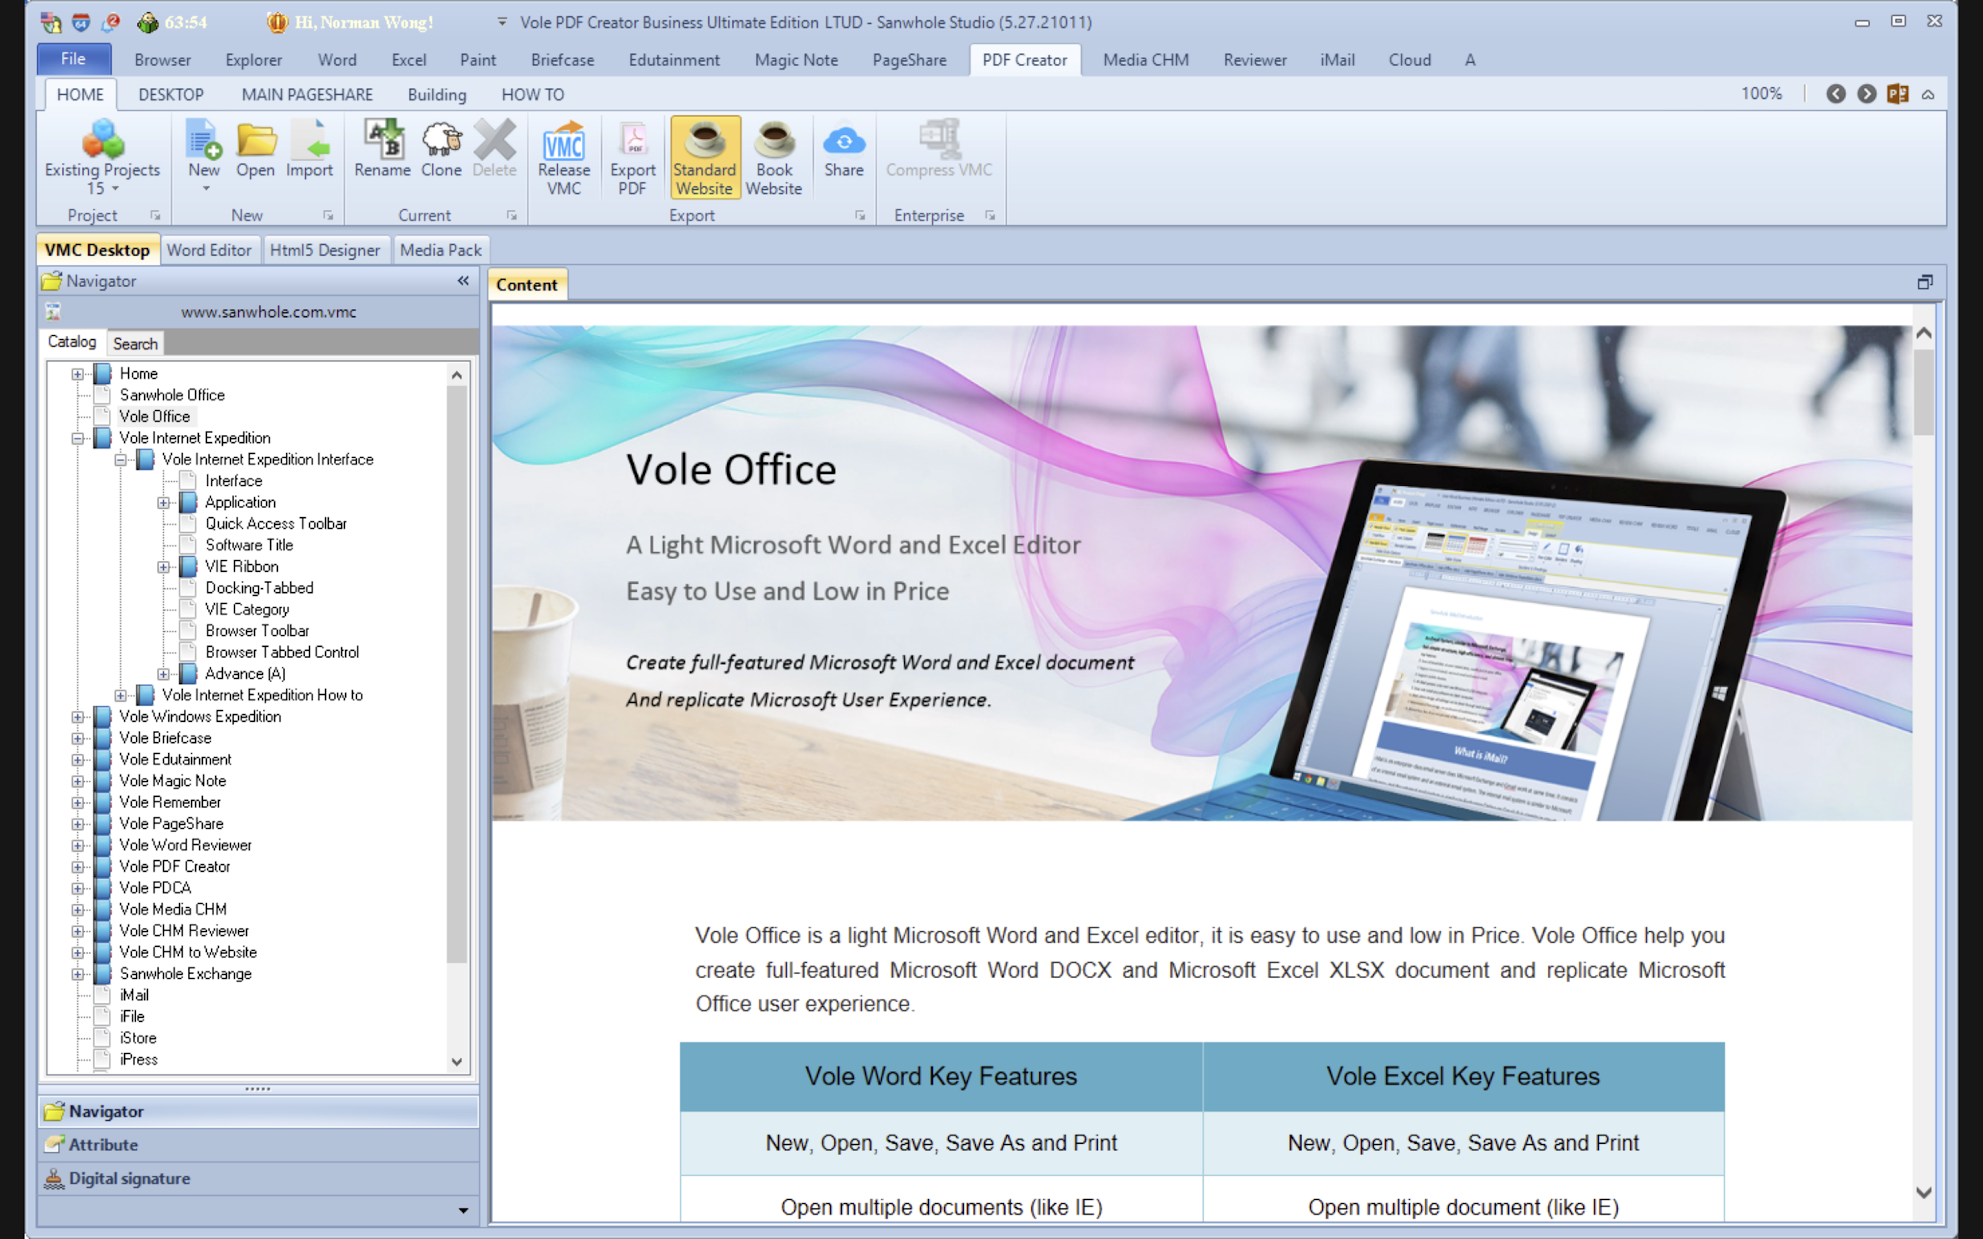 [Free Giveaway] Vole PDF Creator Professional Edition v5.26.20125 Registration Code to Build Professional PDF Documents